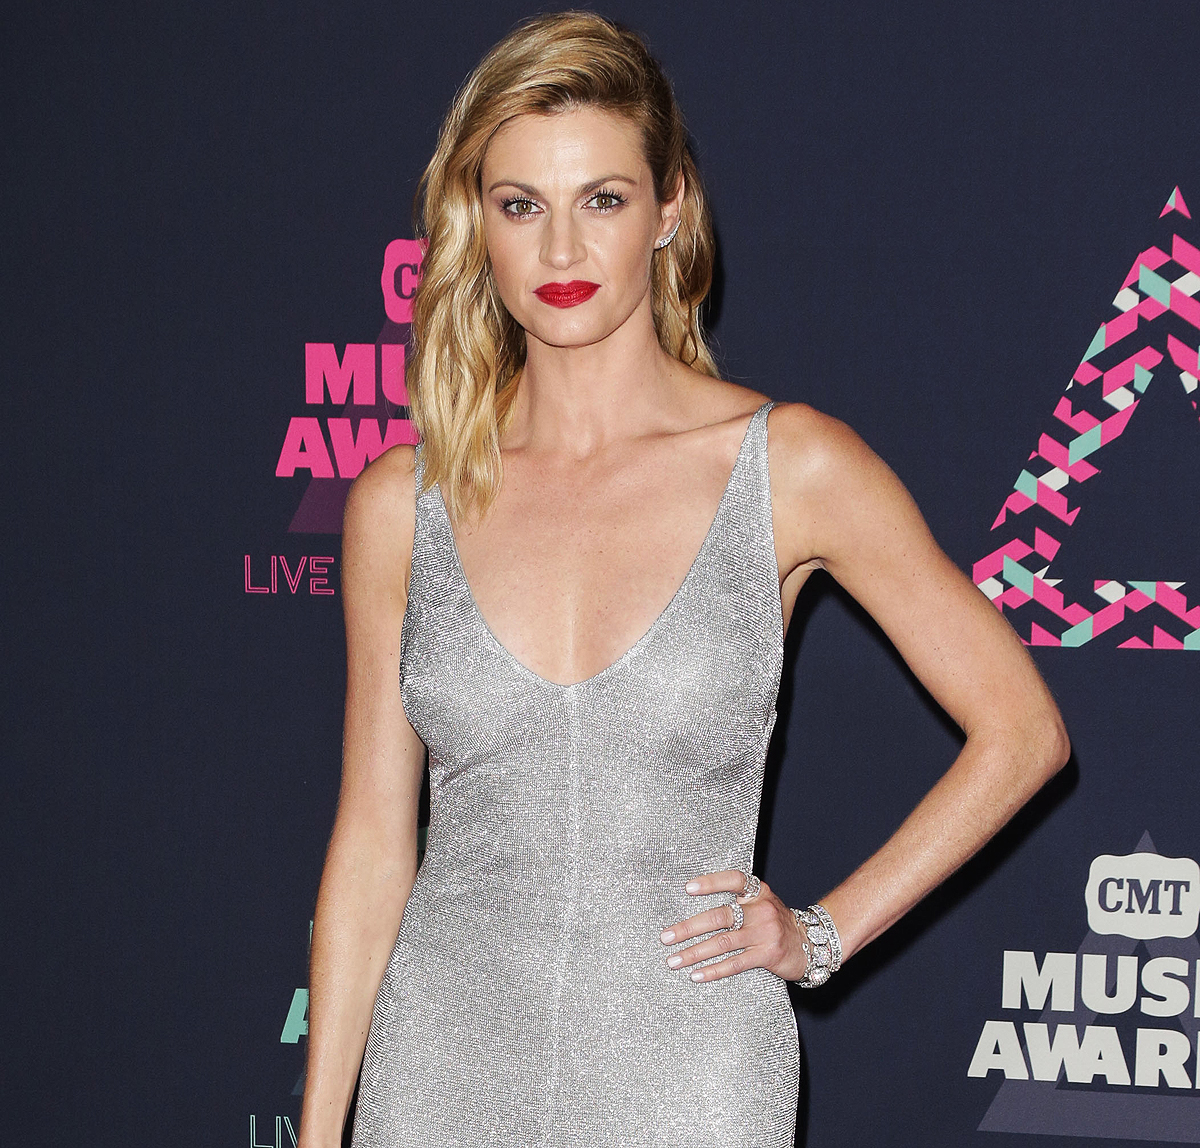 Erin Andrews wows in a Dazzling Outfit as she arrives at 2016 CMT Music Awards Pink carpet